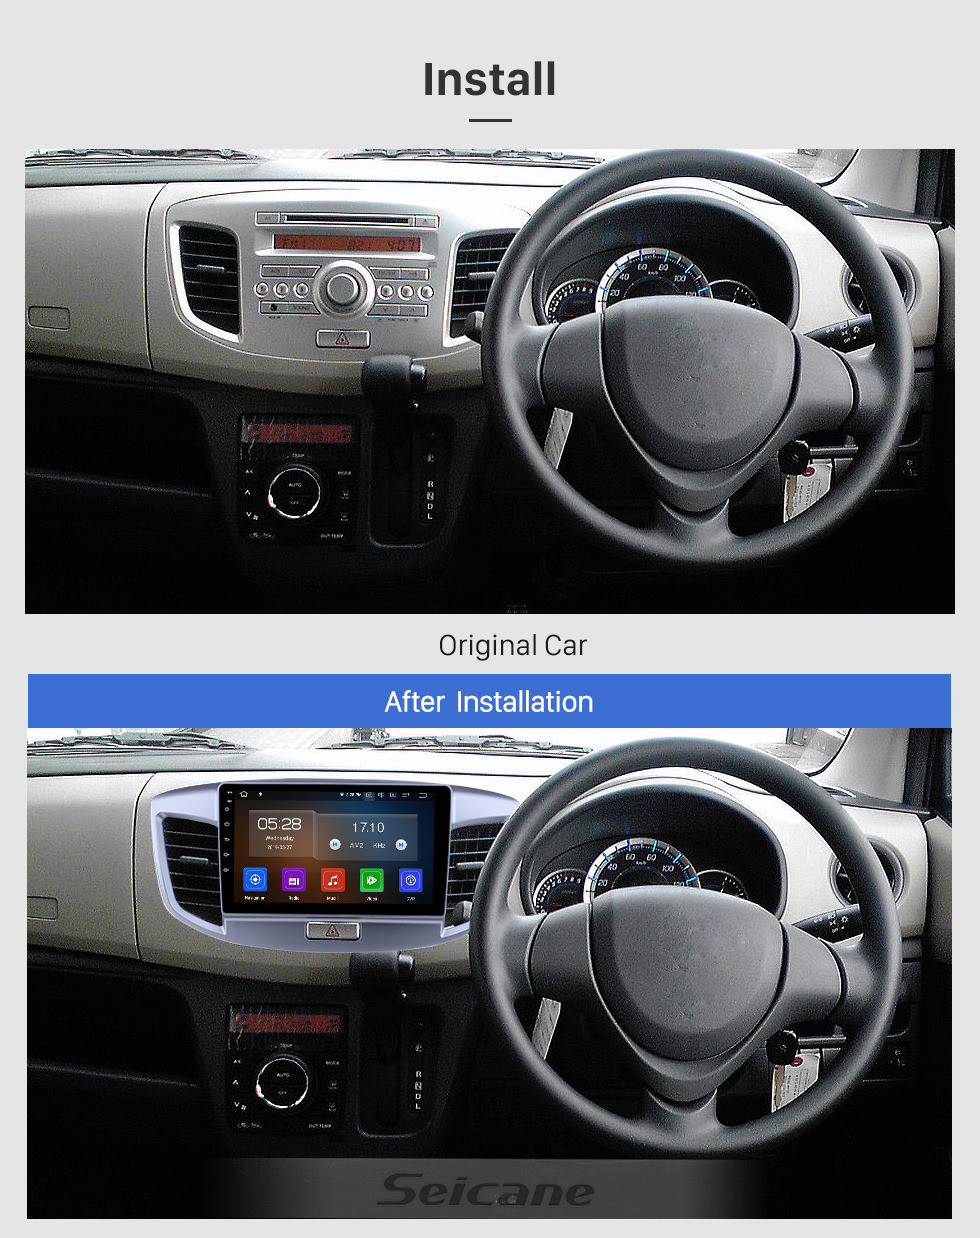 Seicane 9 inch Android 10.0 GPS Navigation Radio for 2015 Suzuki Wagon with HD Touchscreen Carplay AUX Bluetooth support 1080P